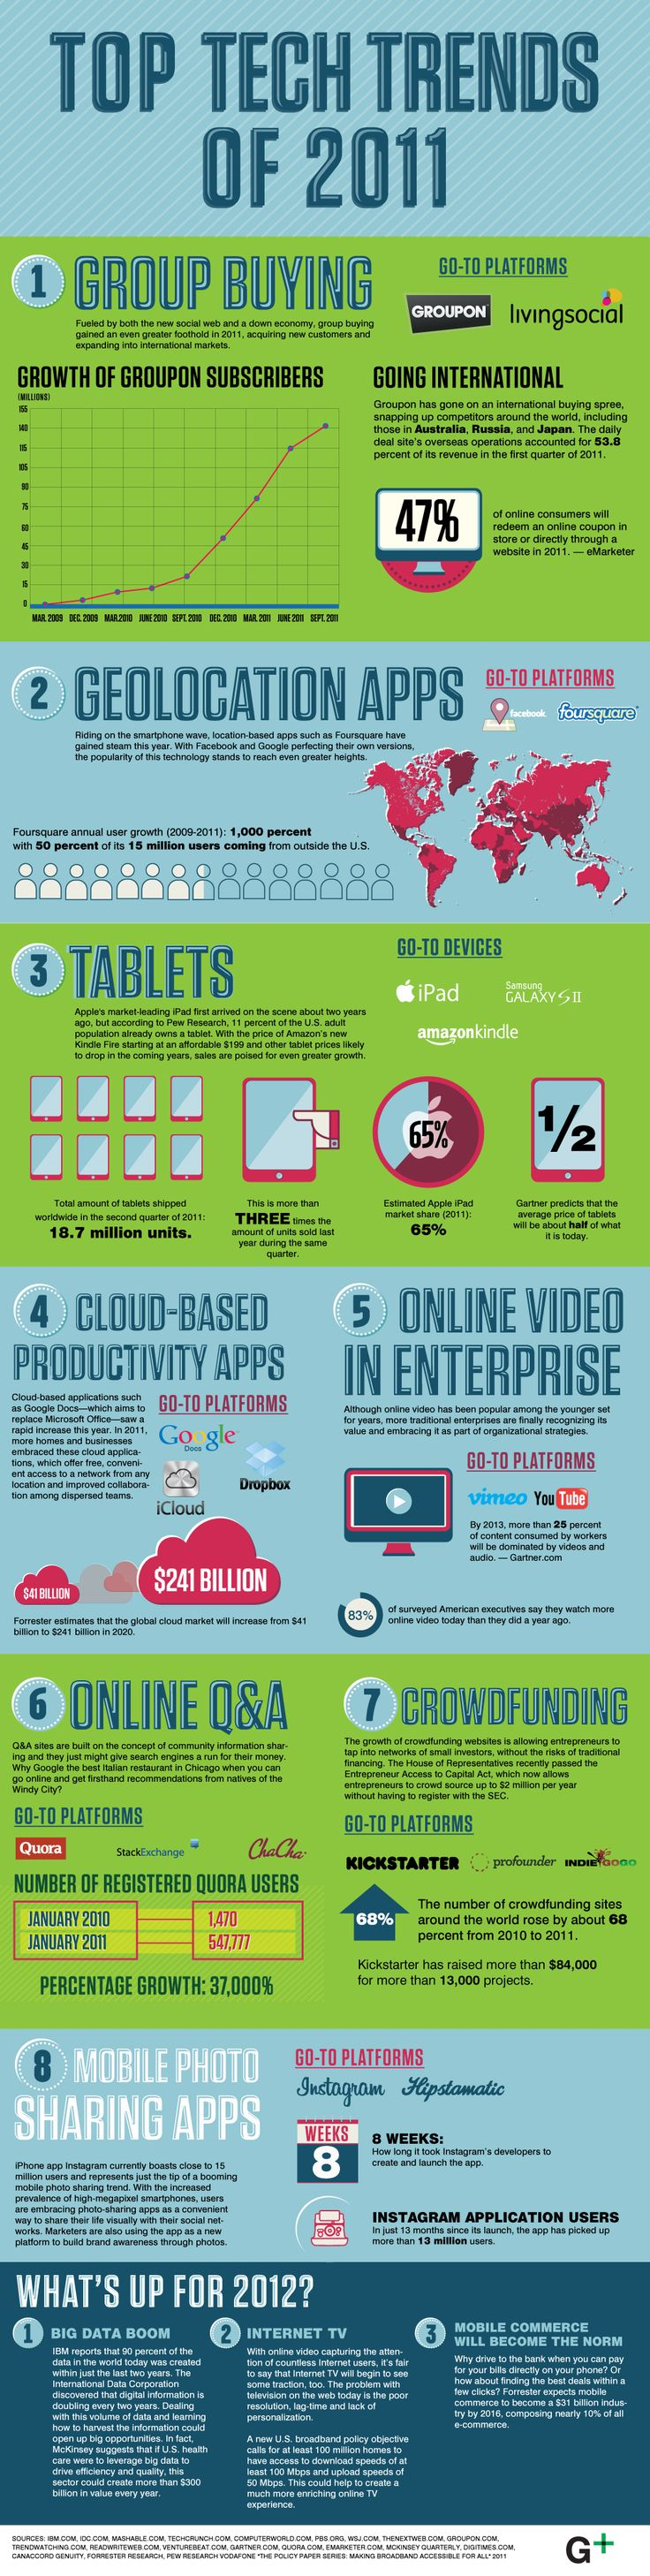 Tech Trends 2011 into 2012